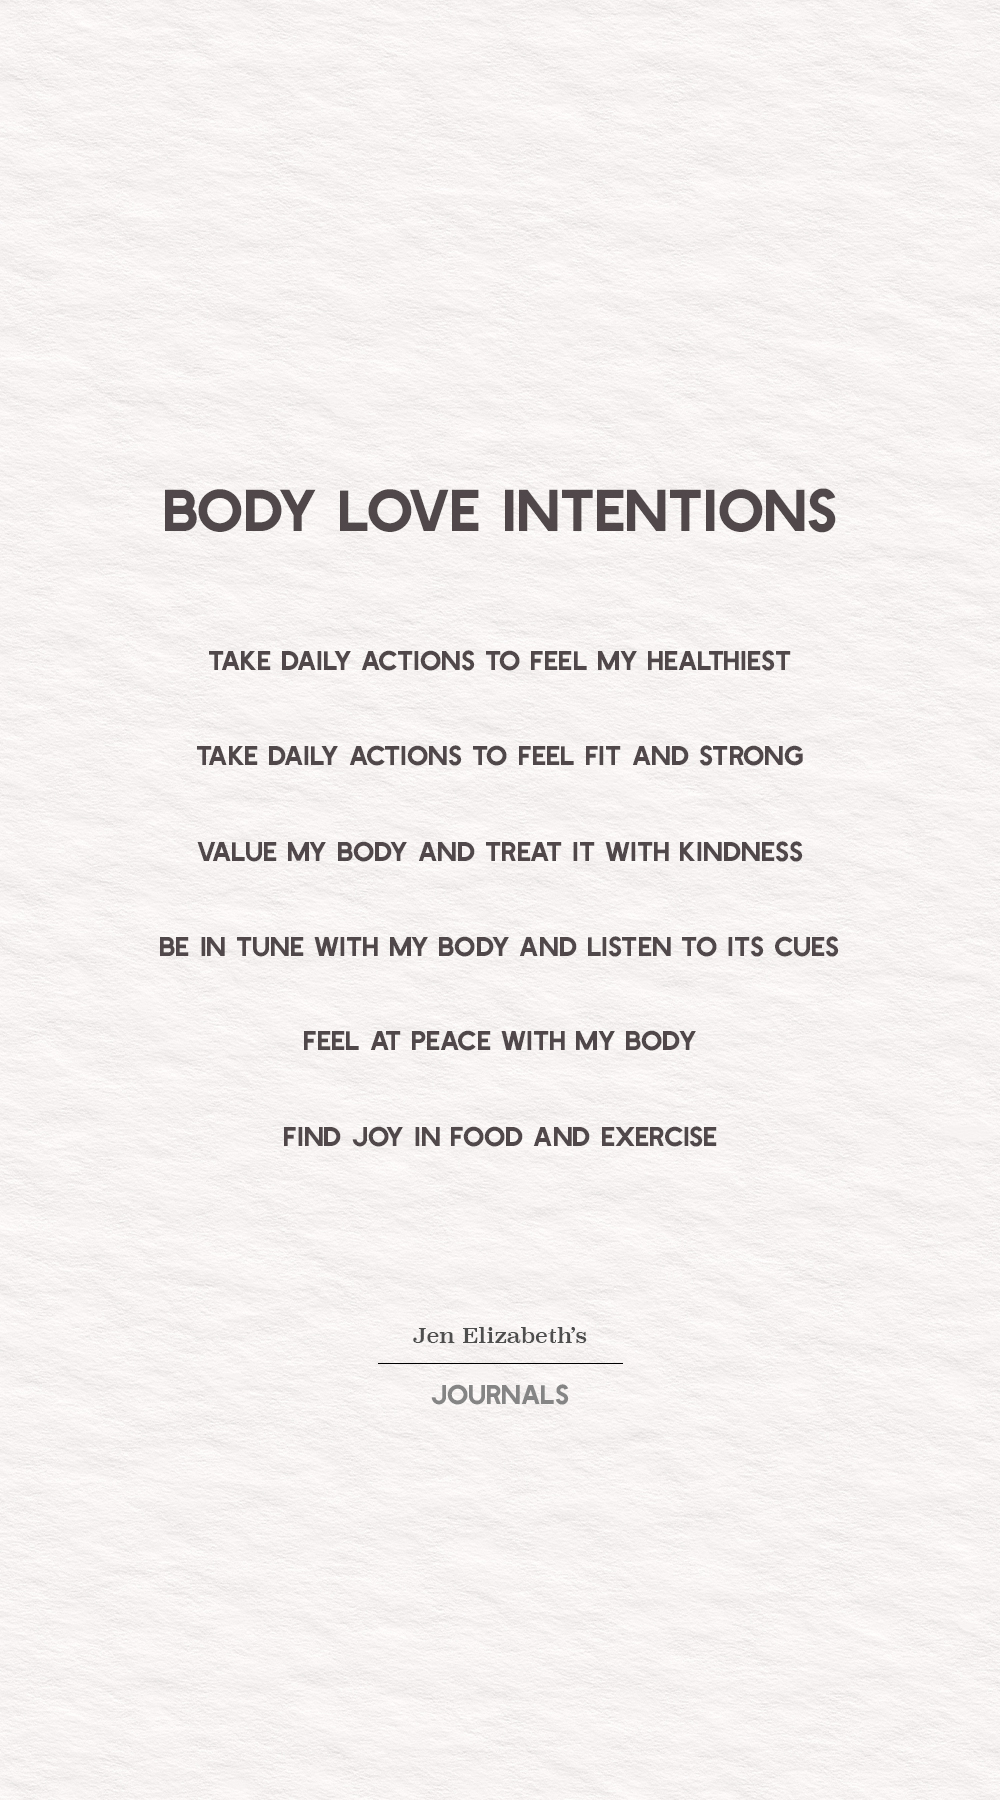 Body-Love-Intentions